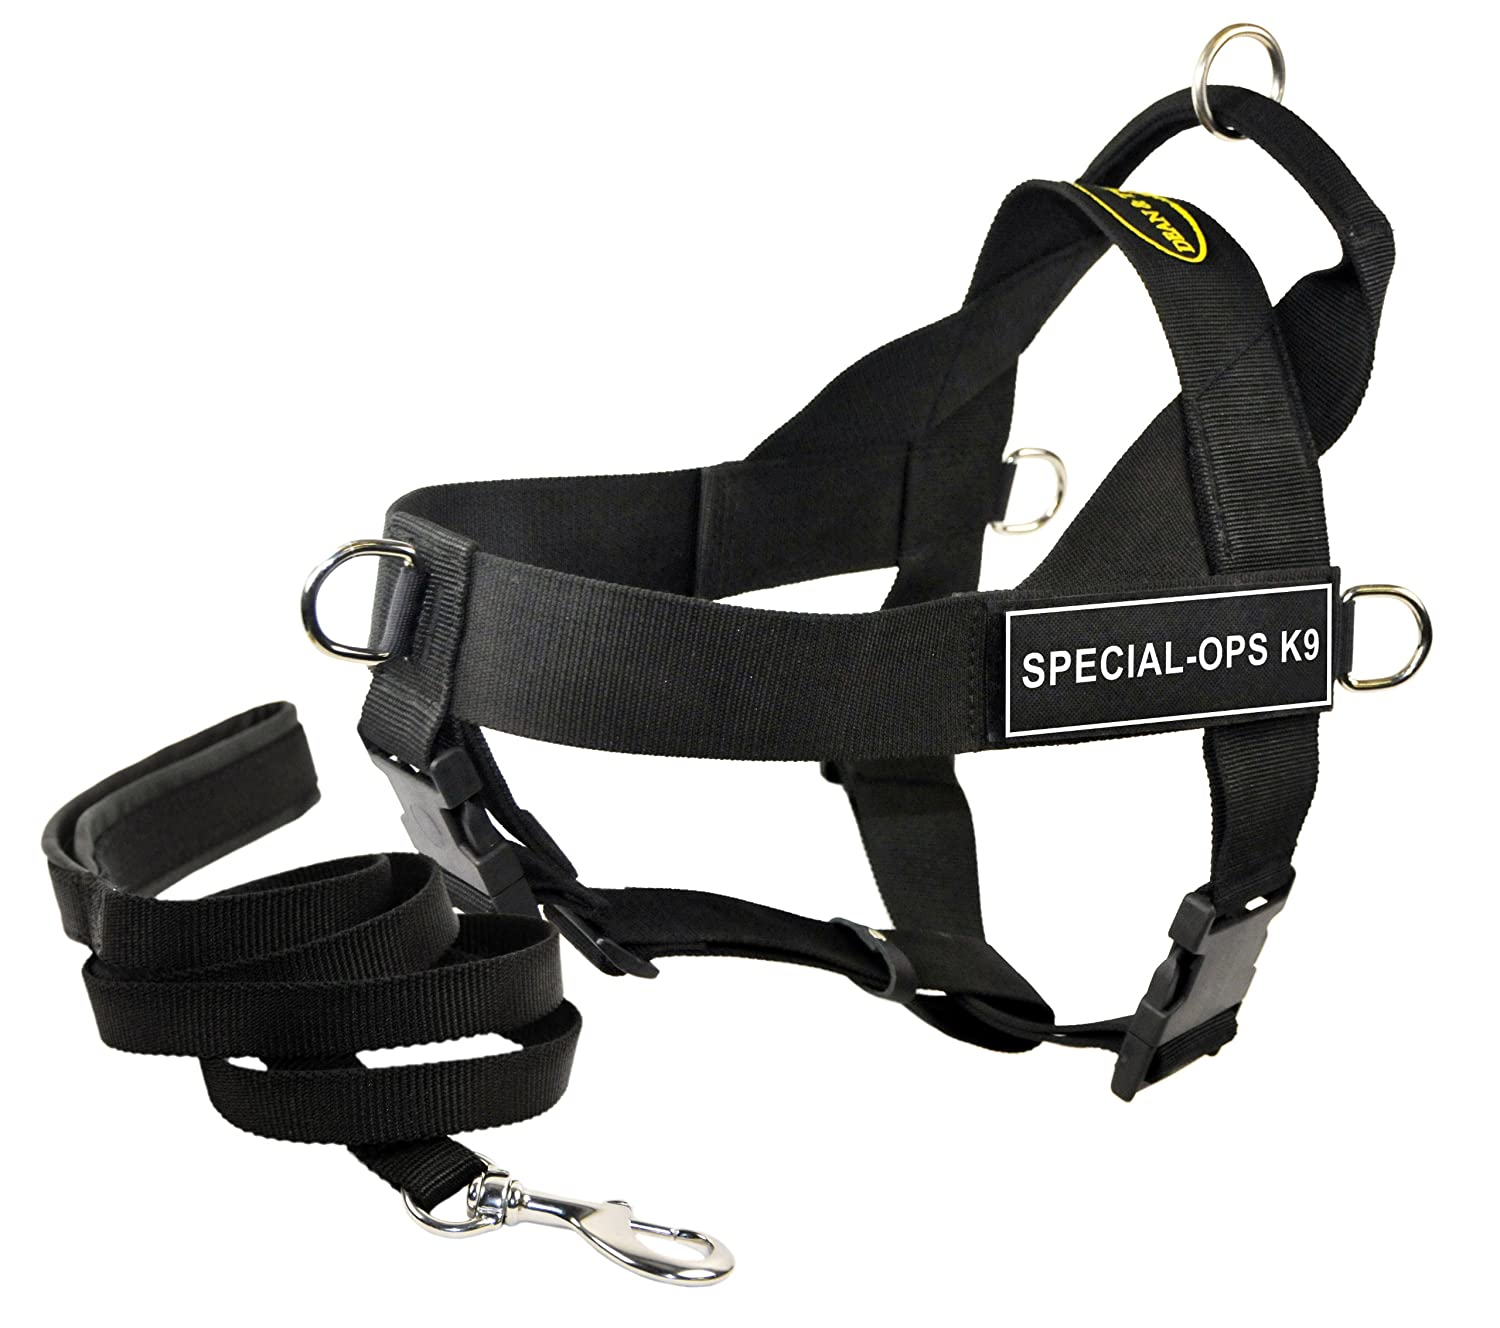 Dean & Tyler's DT Universal SPECIAL-OPS K9 Harness, Small, with 6 ft Padded Puppy Leash.